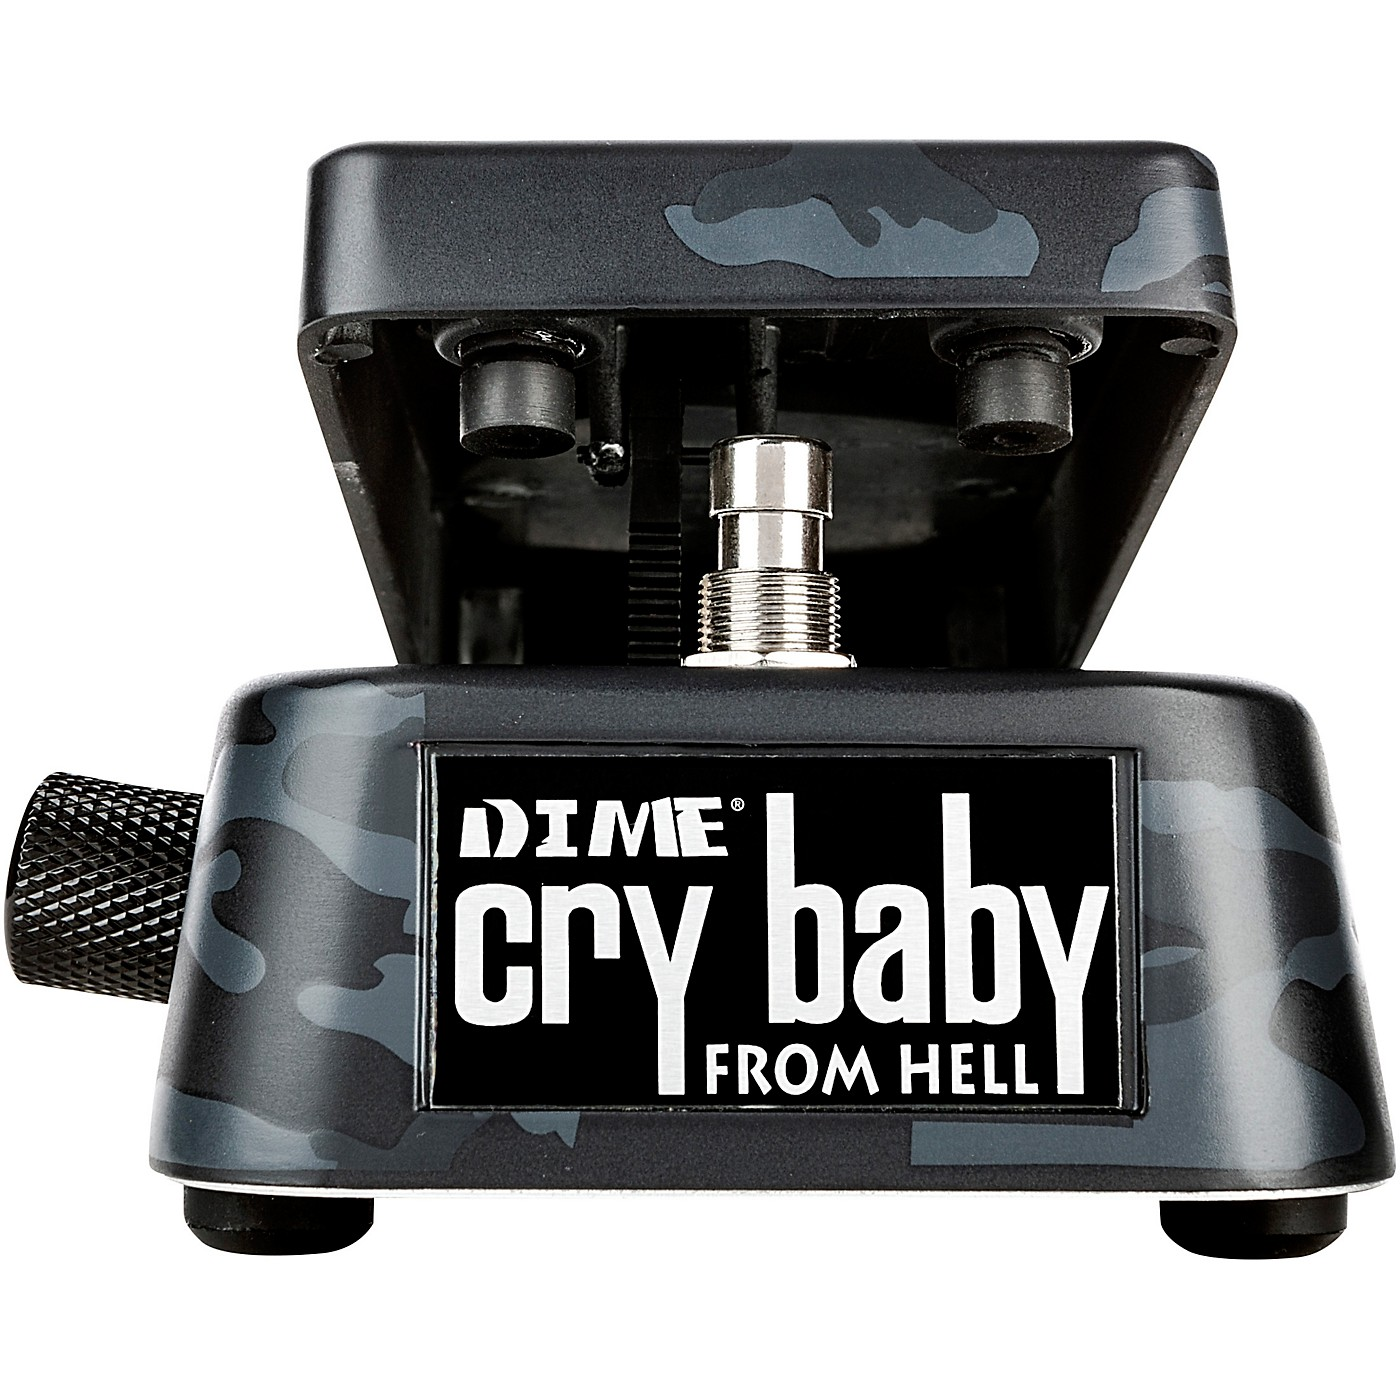 Dunlop Dimebag Cry Baby From Hell Wah Effects Pedal thumbnail